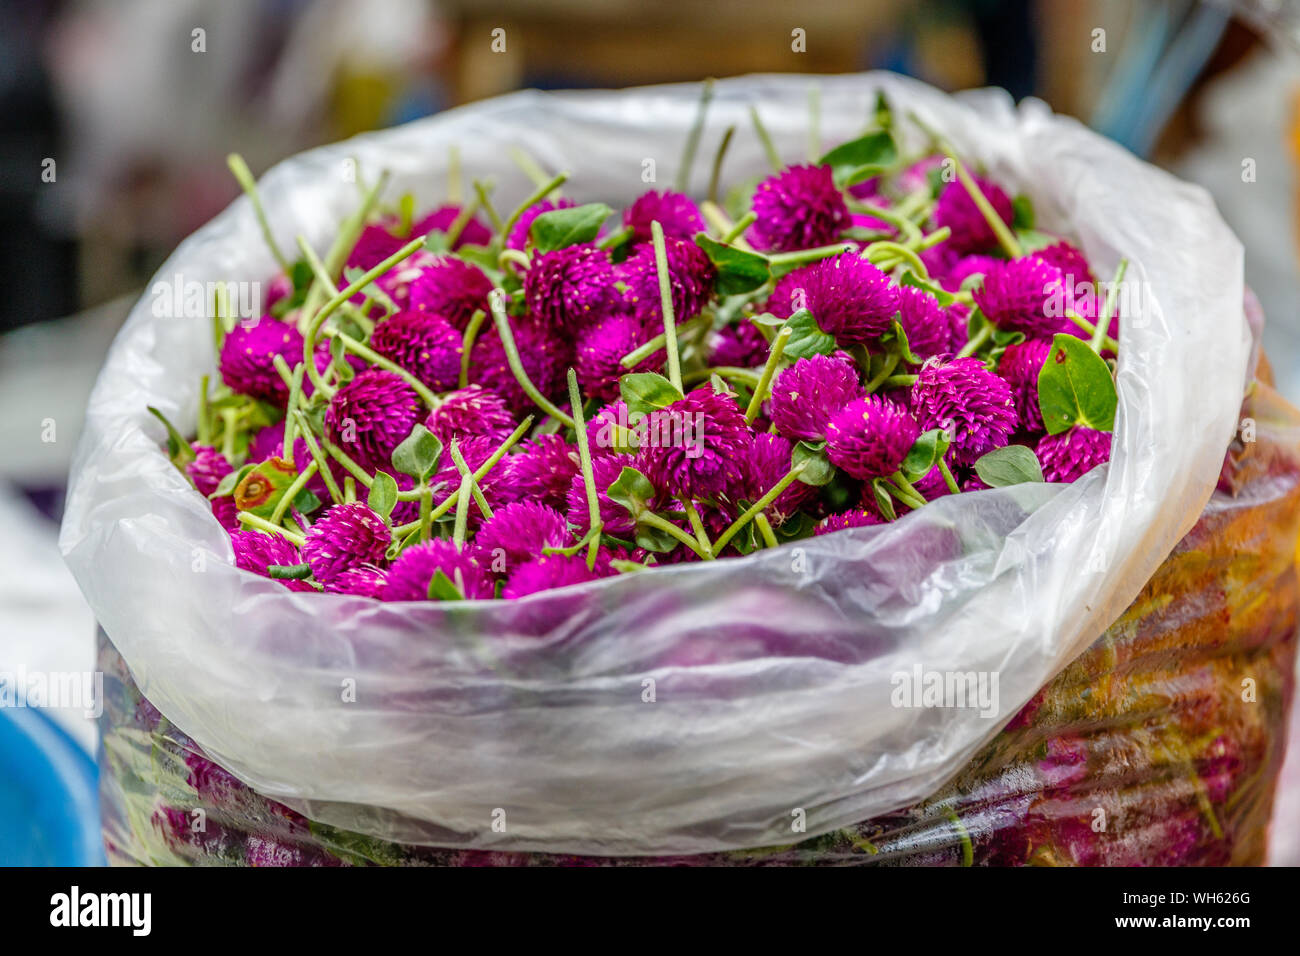 Bags of purple сlover or trefoil for making traditional flower garland offerings phuang malai at Pak Khlong Talat, Bangkok flower market. Thailand Stock Photo